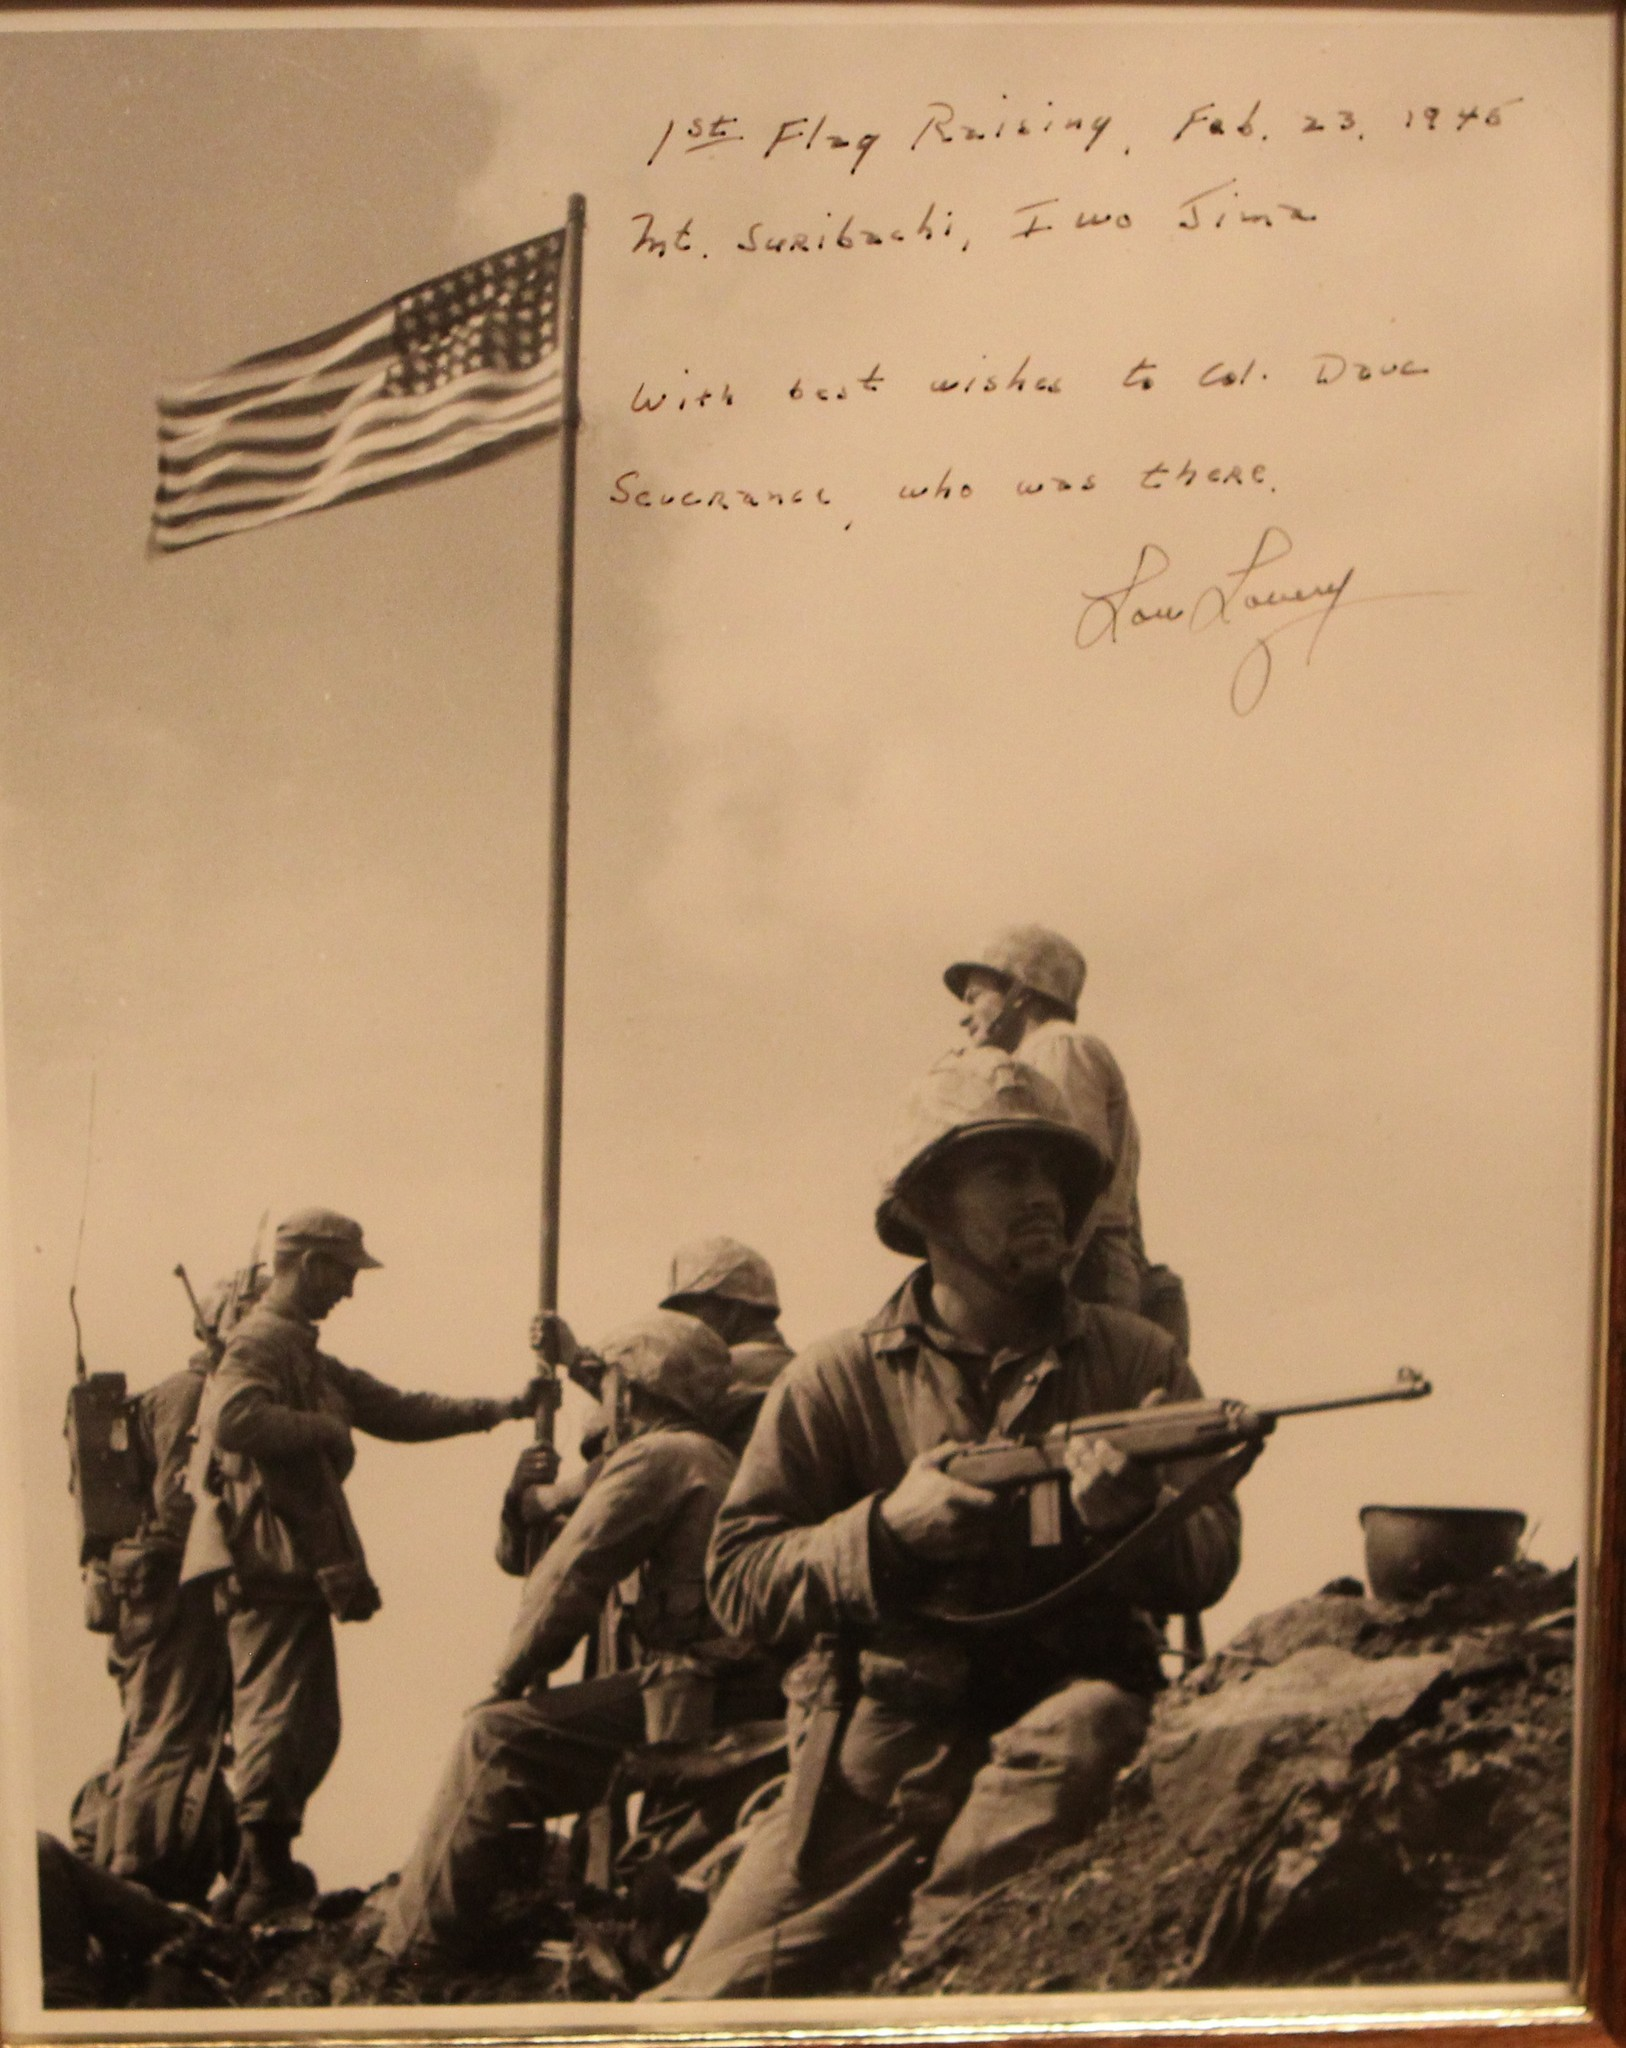 The actual first Iwo Jima flag-raising, as photographed by Lou Lowery, who signed this copy